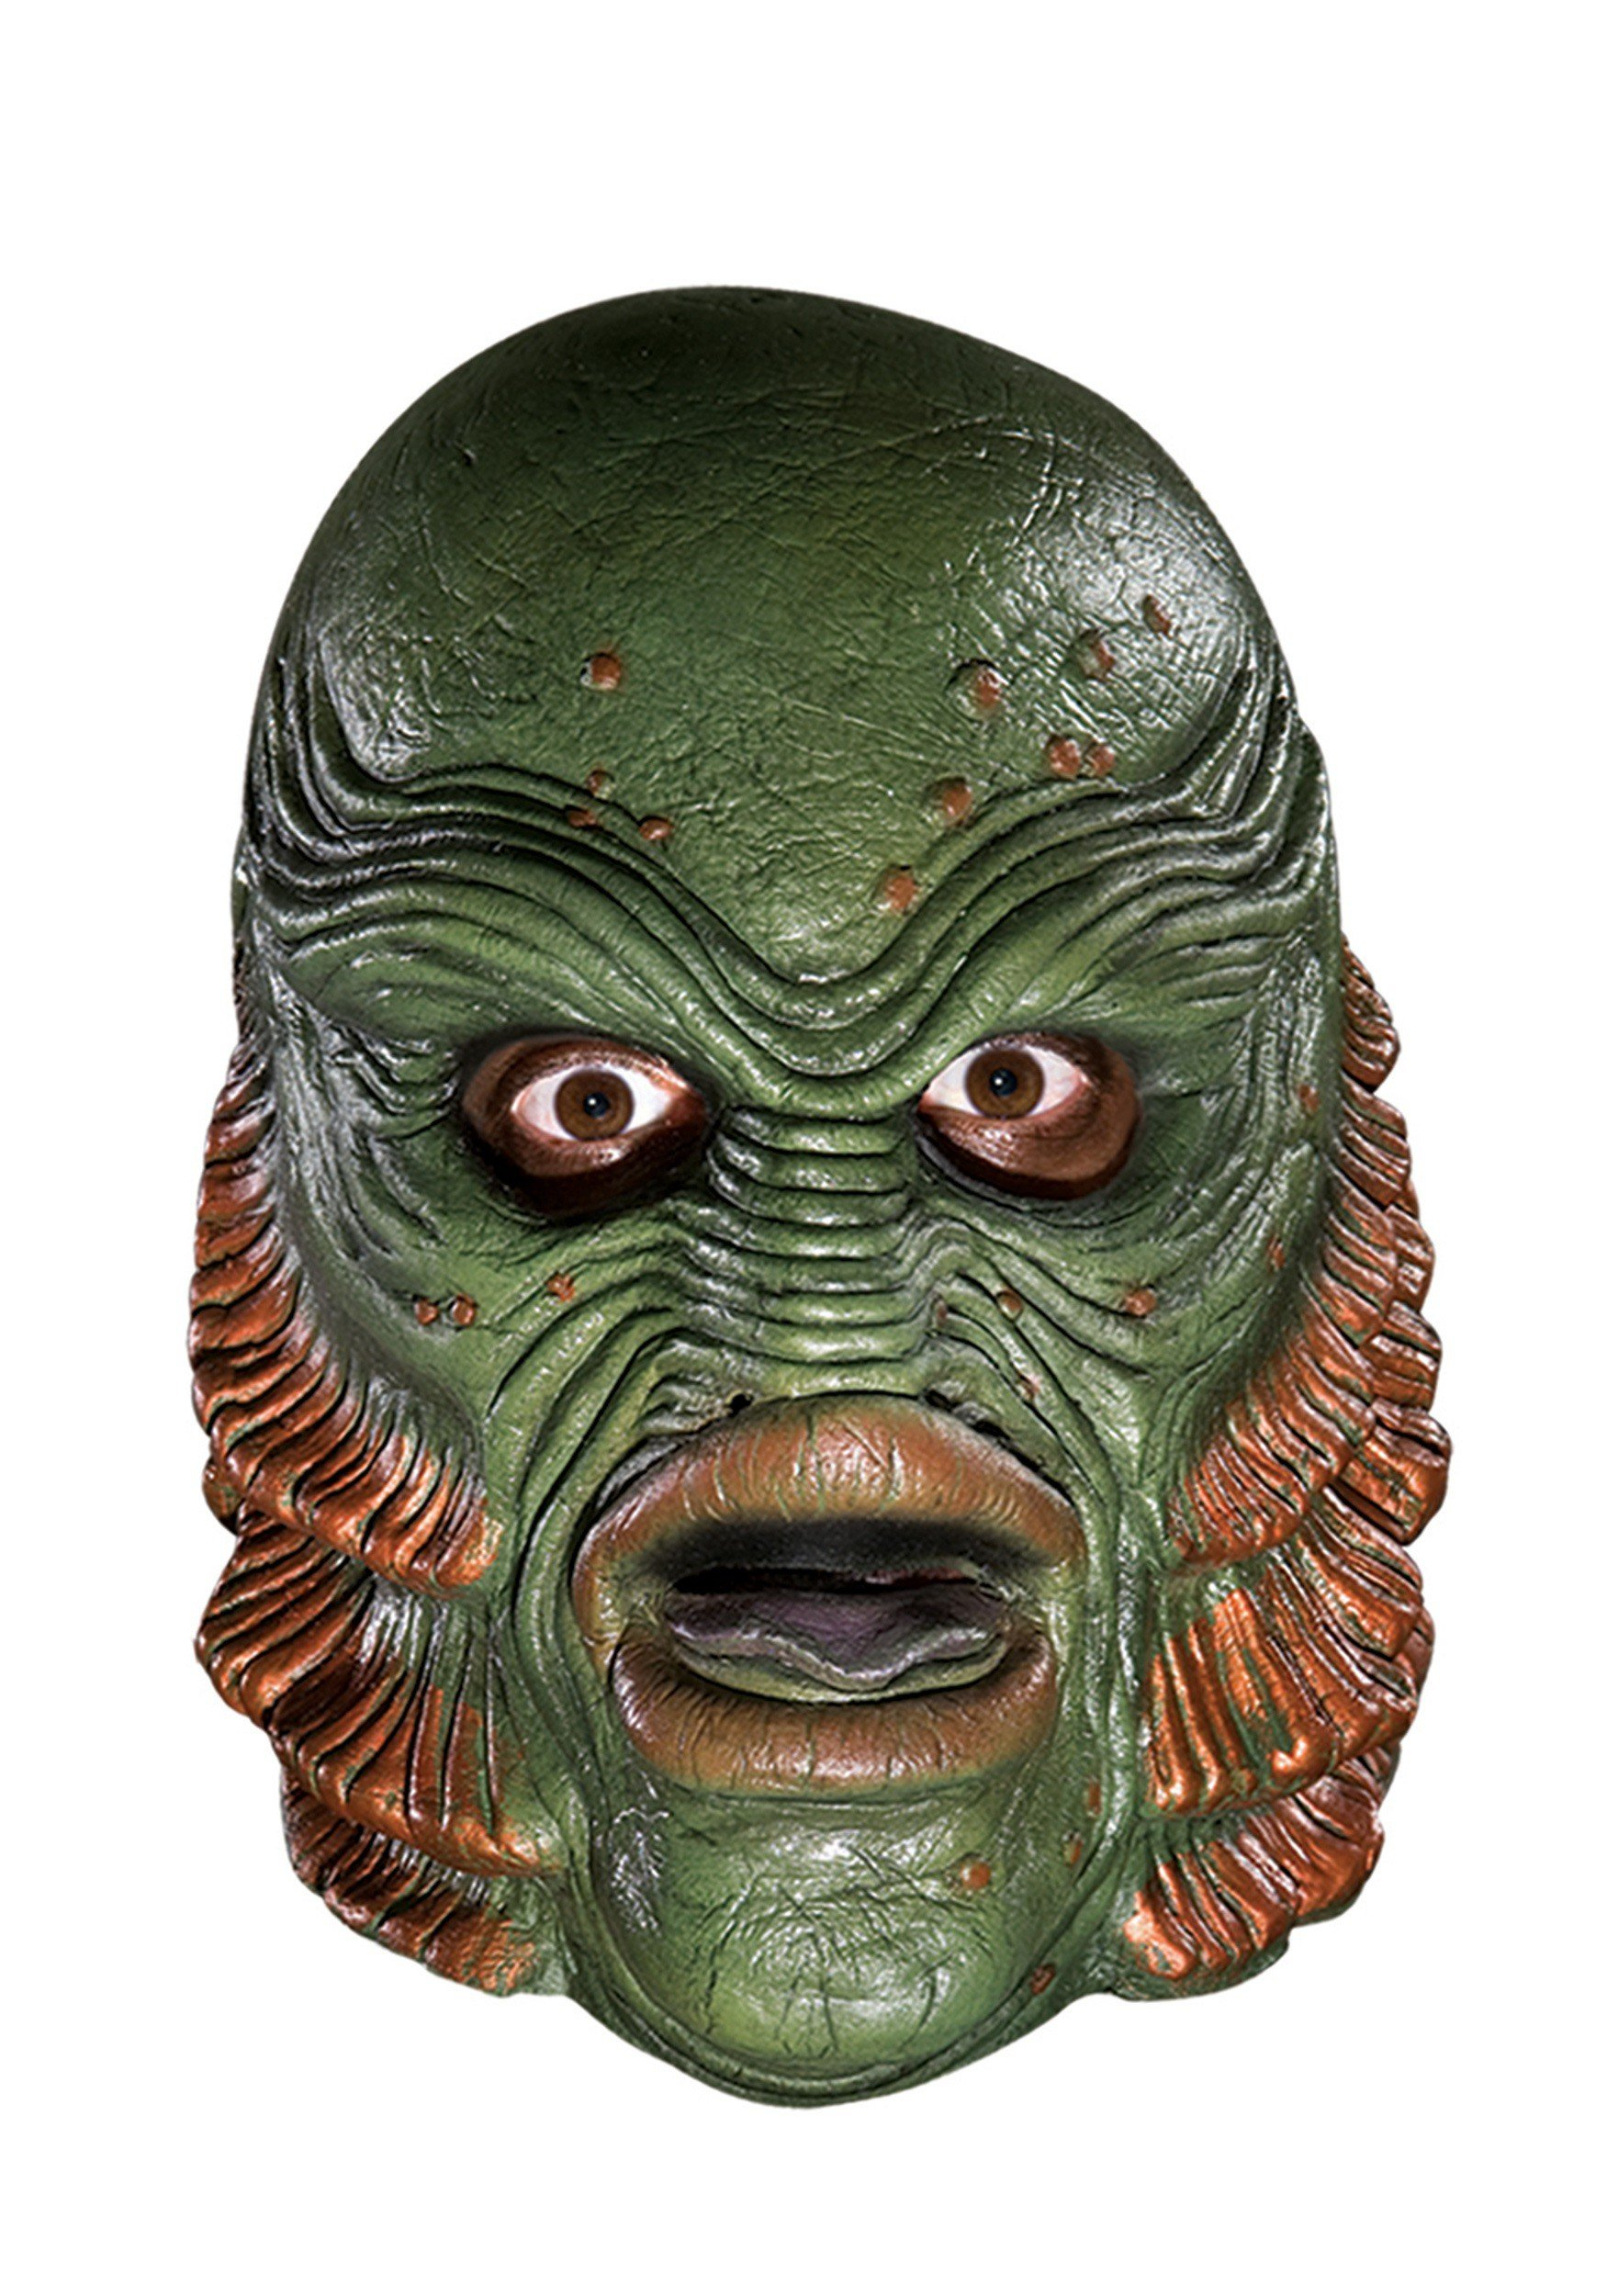 HalloweenMasks Deluxe The Creature from the Black Lagoon Mask Standard